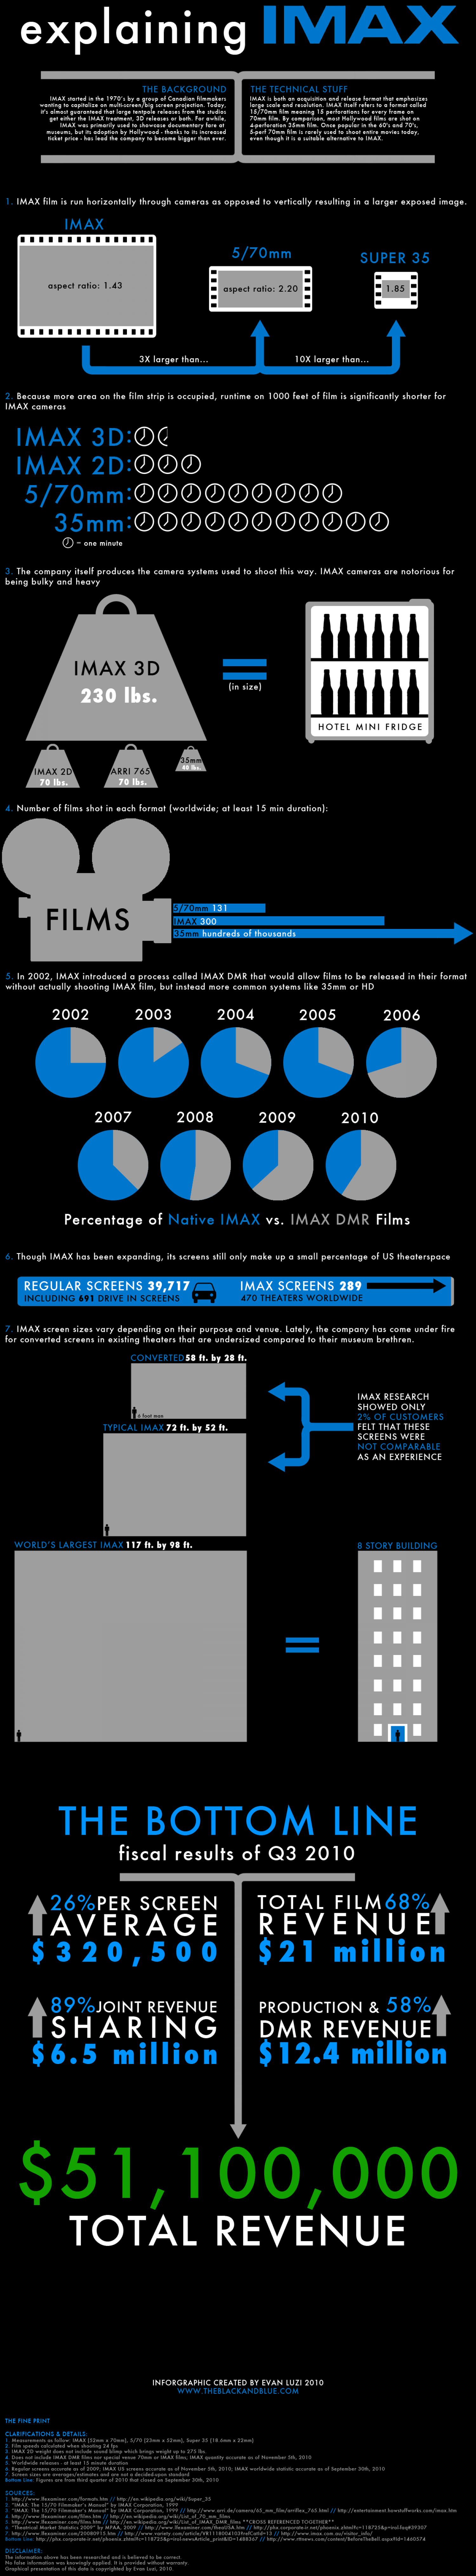 Explaining Imax Infographic